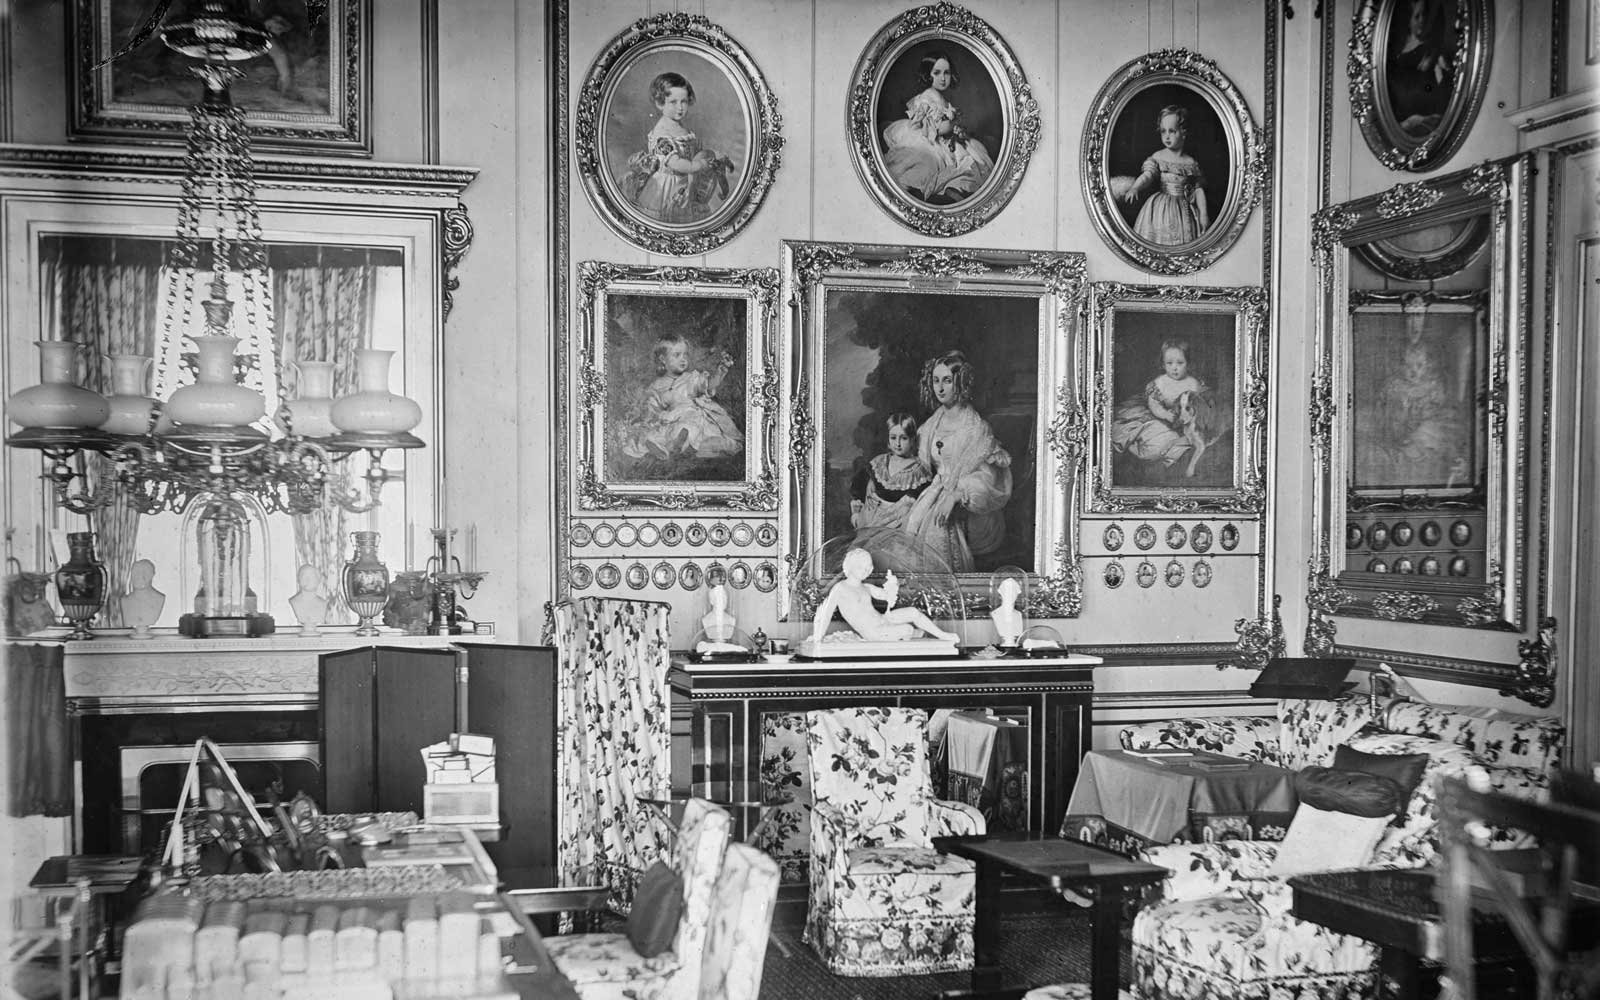 1950s Interior Design Look Inside Buckingham Palace Before They Start The 455